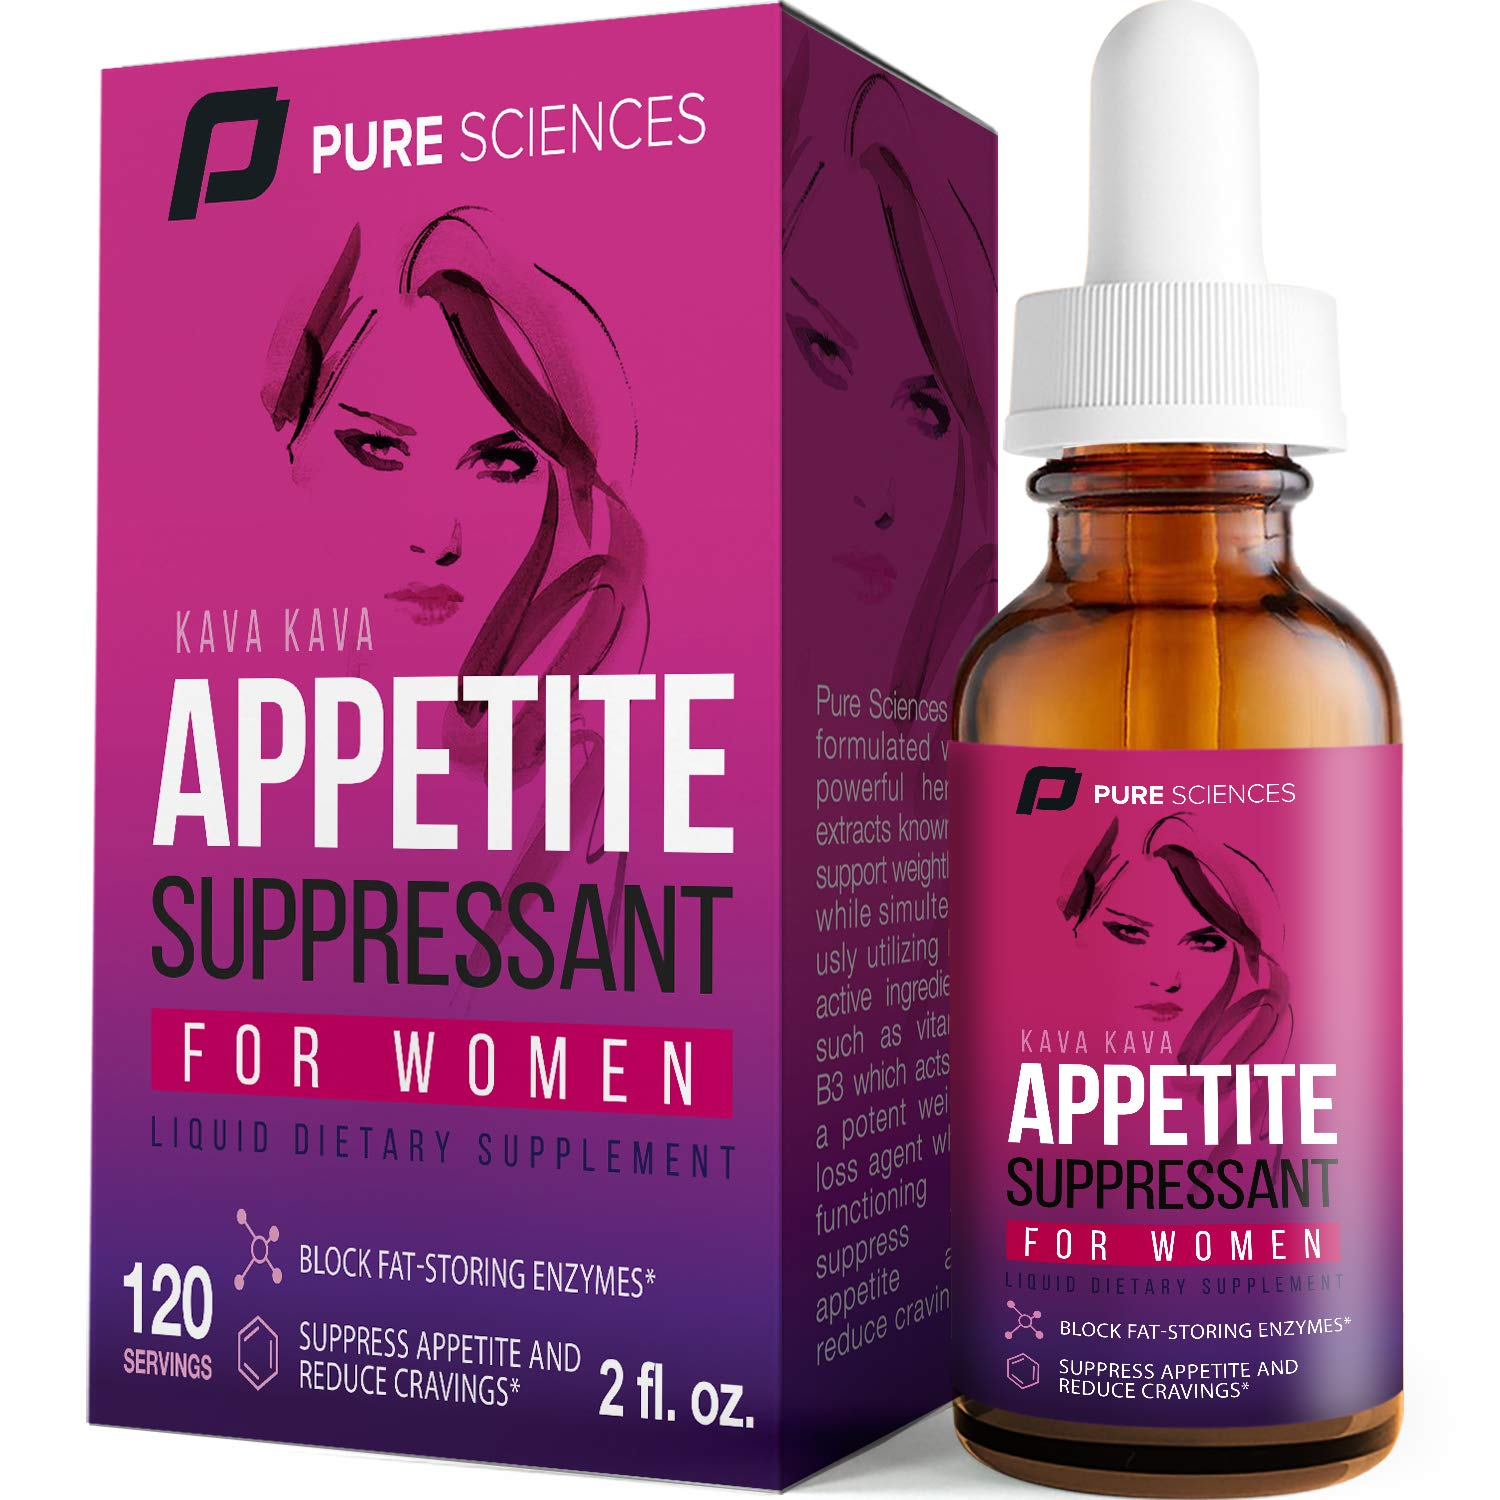 Appetite Suppressant for Women - Superior Weight Loss Kava Kava Formula - Powerful Natural Ingredients - Increase Energy - Boost Metabolic Rate - Pure Sciences - 60DAY by Pure Sciences